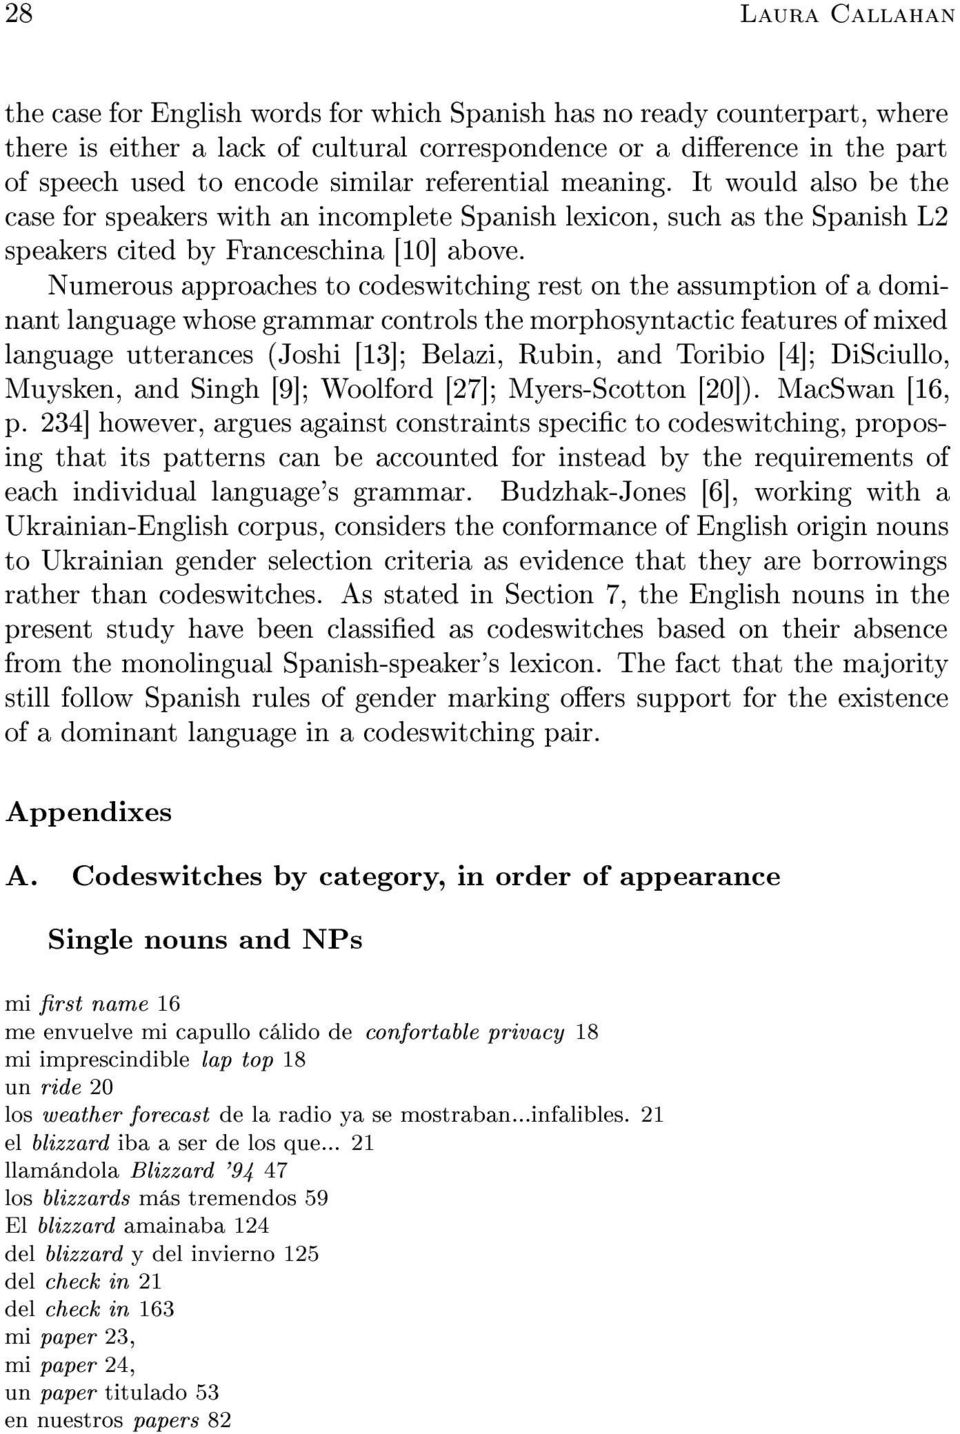 Numerous approaches to codeswitching rest on the assumption of a dominant language whose grammar controls the morphosyntactic features of mixed language utterances (Joshi [13]; Belazi, Rubin, and